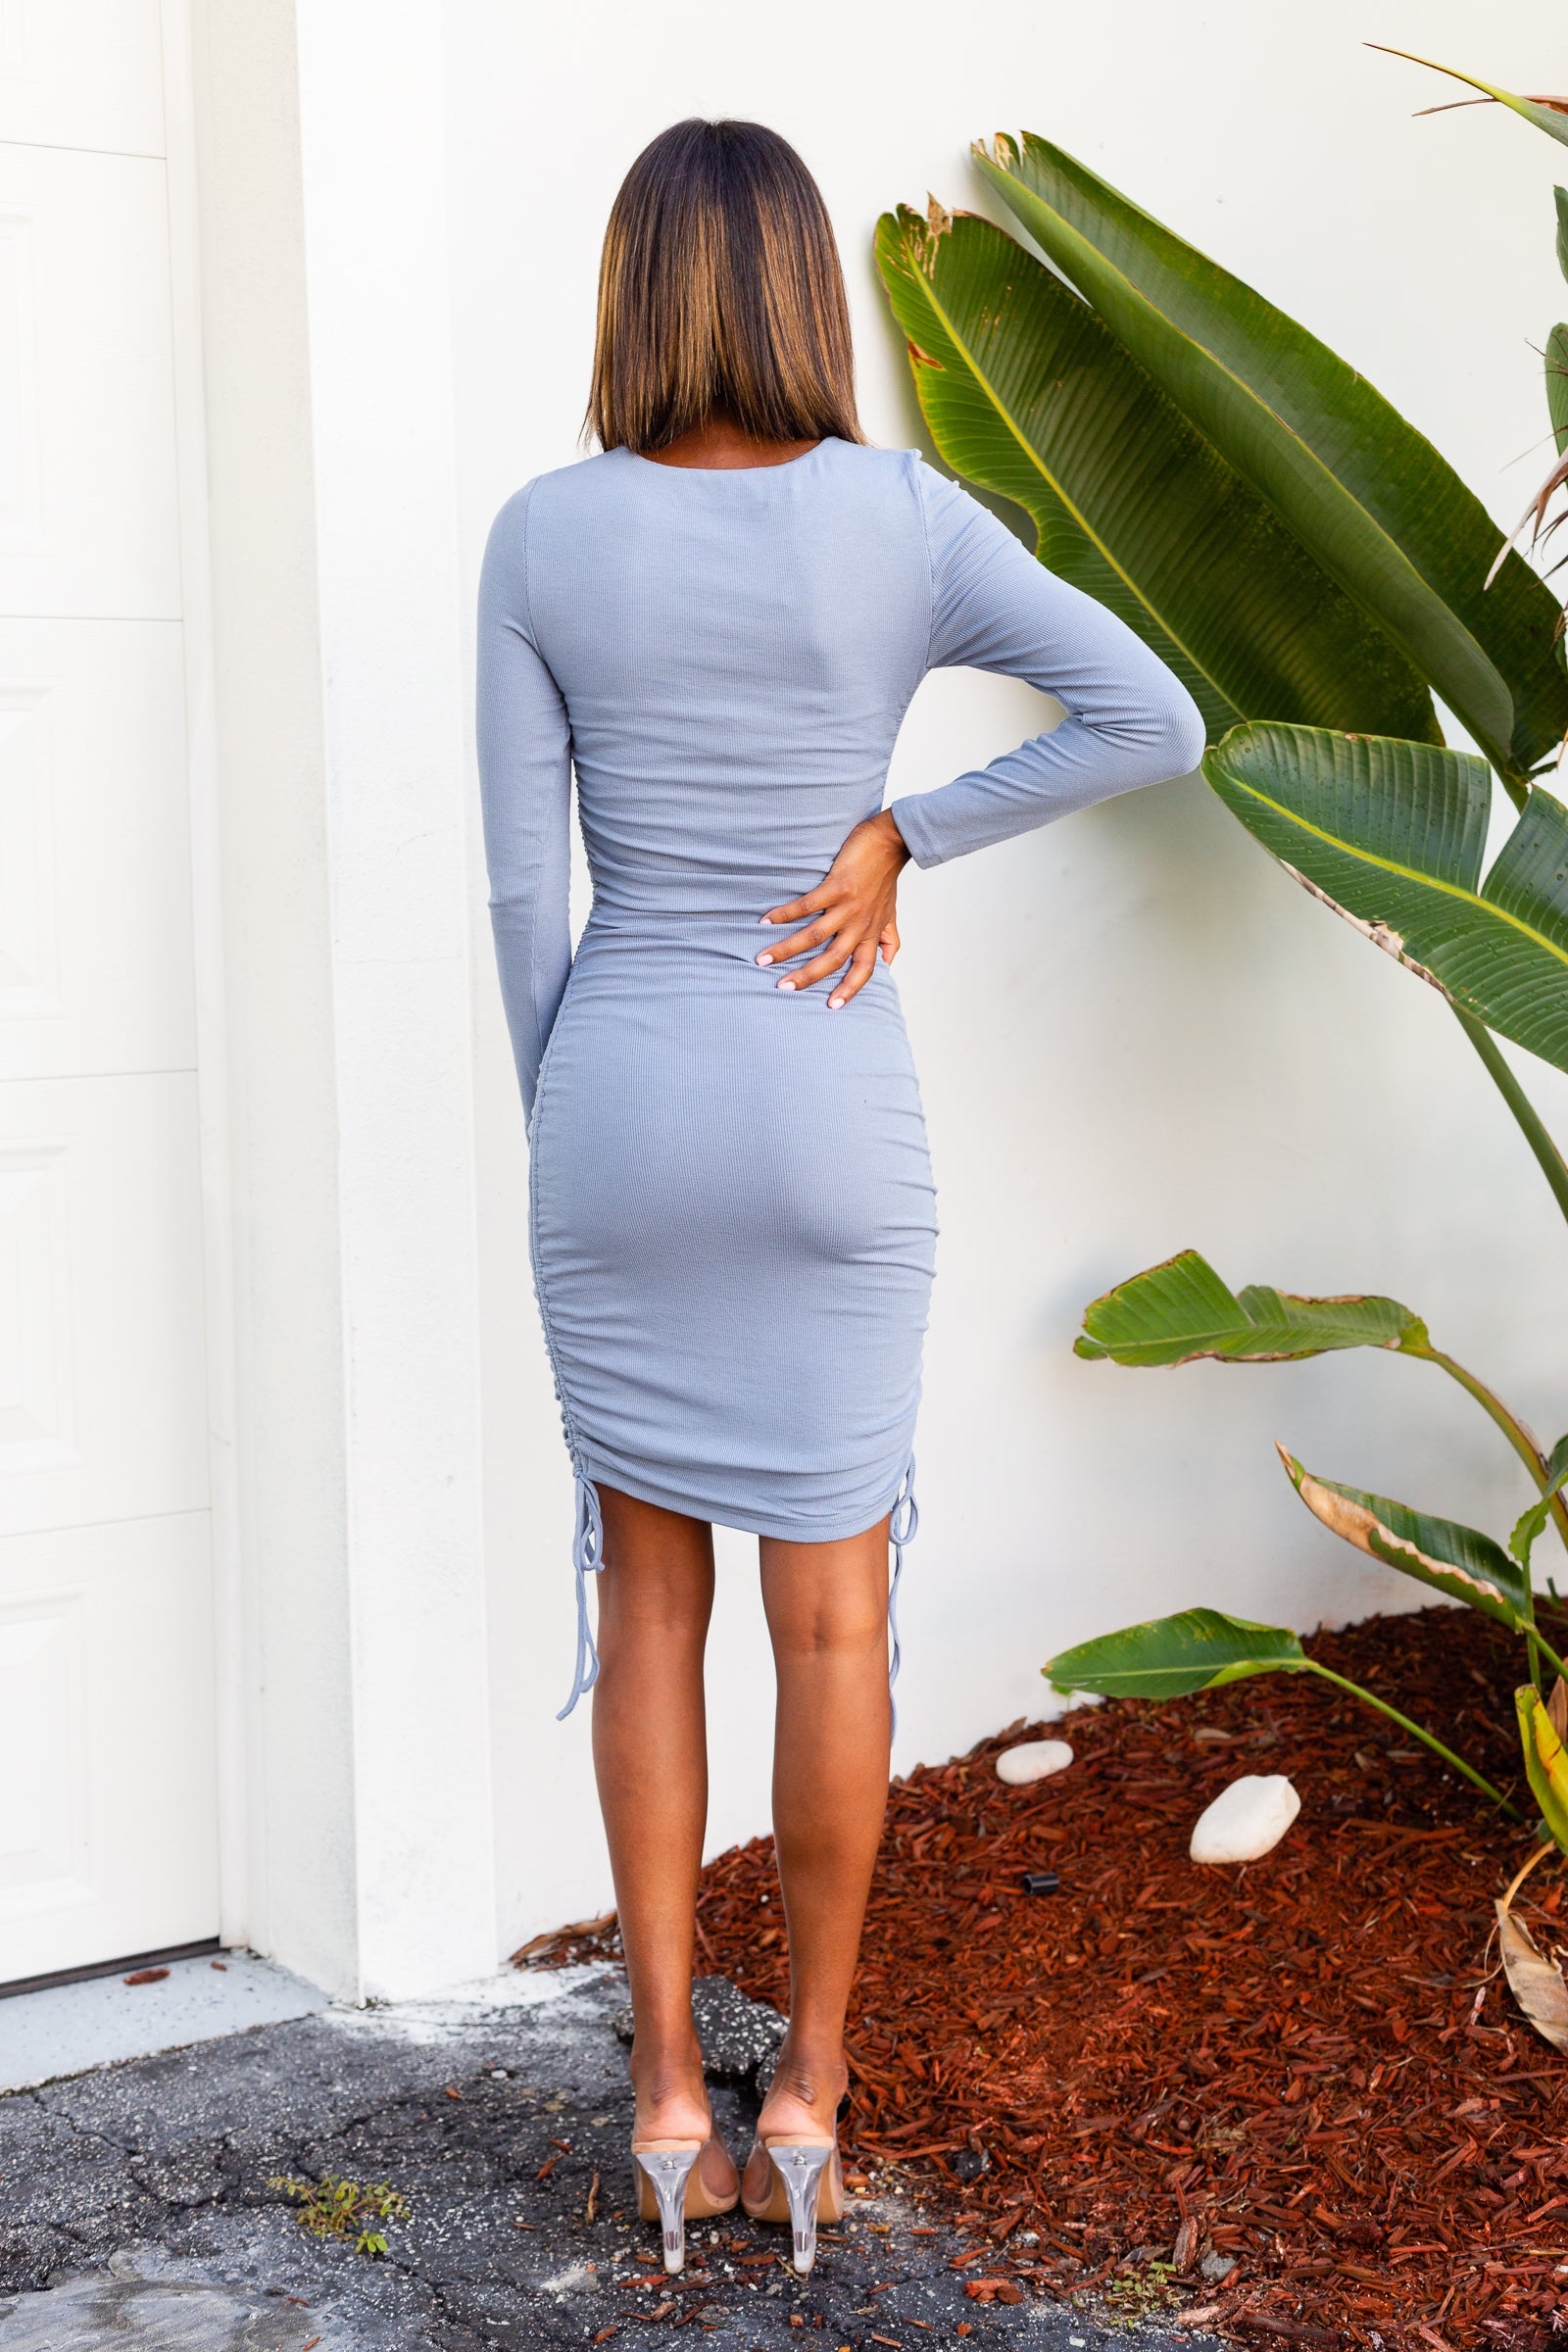 Long fitted sleeves attach to a u-neckline on a fitted and ribbed bodice and go down into a hip-hugging midi skirt with drawstring tied ruched details at the side of the dress.